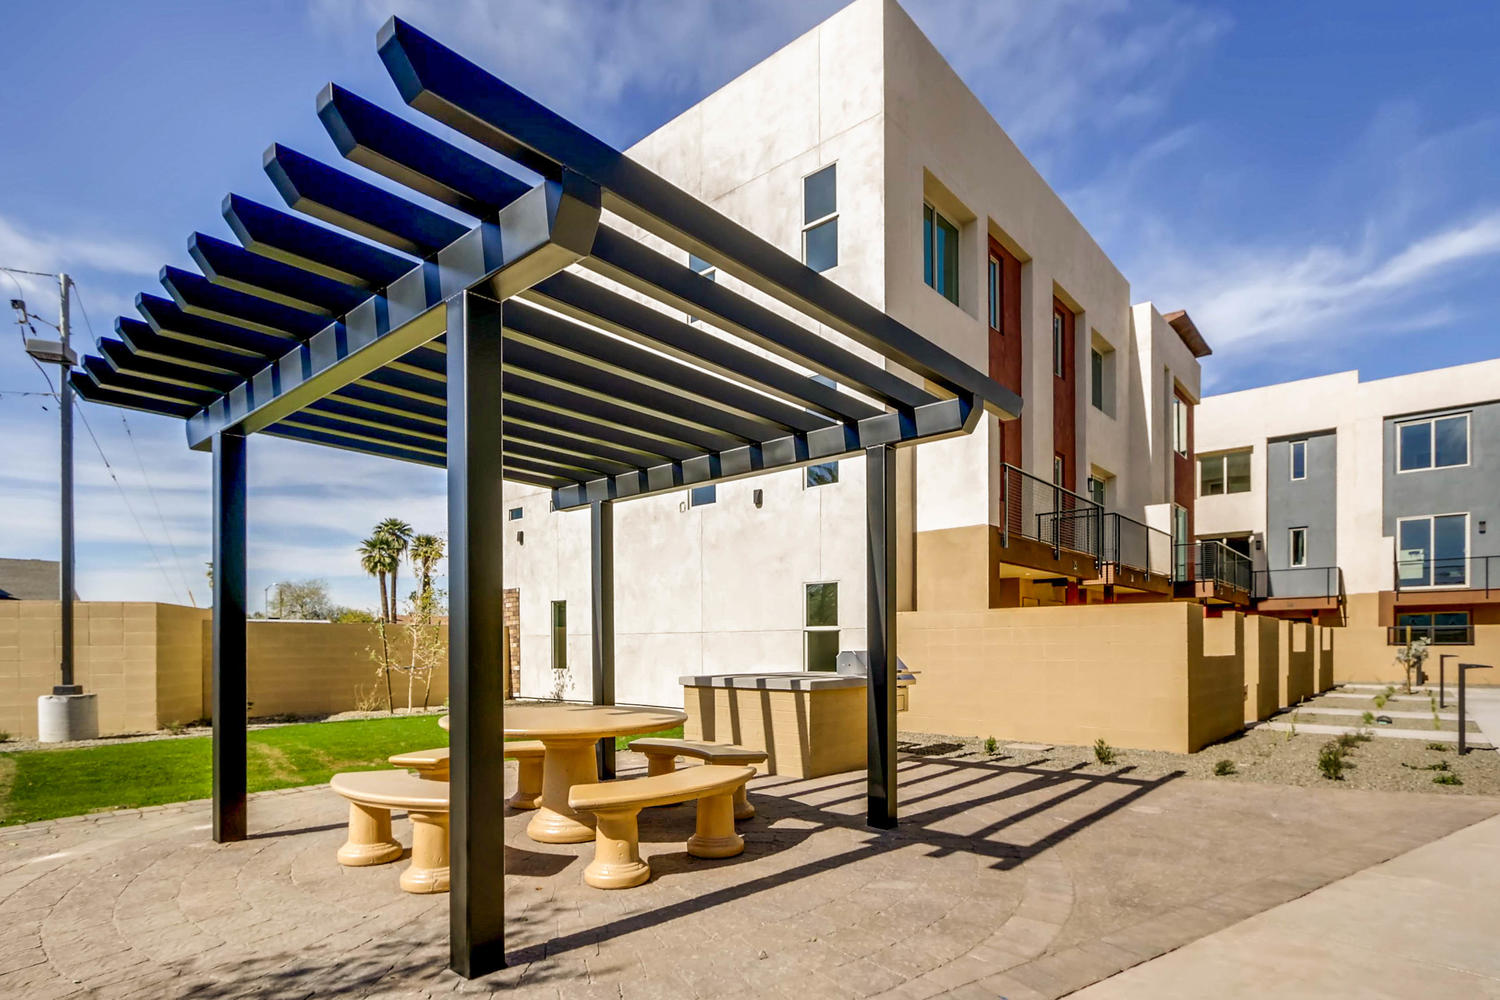 820 N 8th Ave Unit 21 Phoenix-large-068-30-Community Area Park-1500x1000-72dpi.jpg